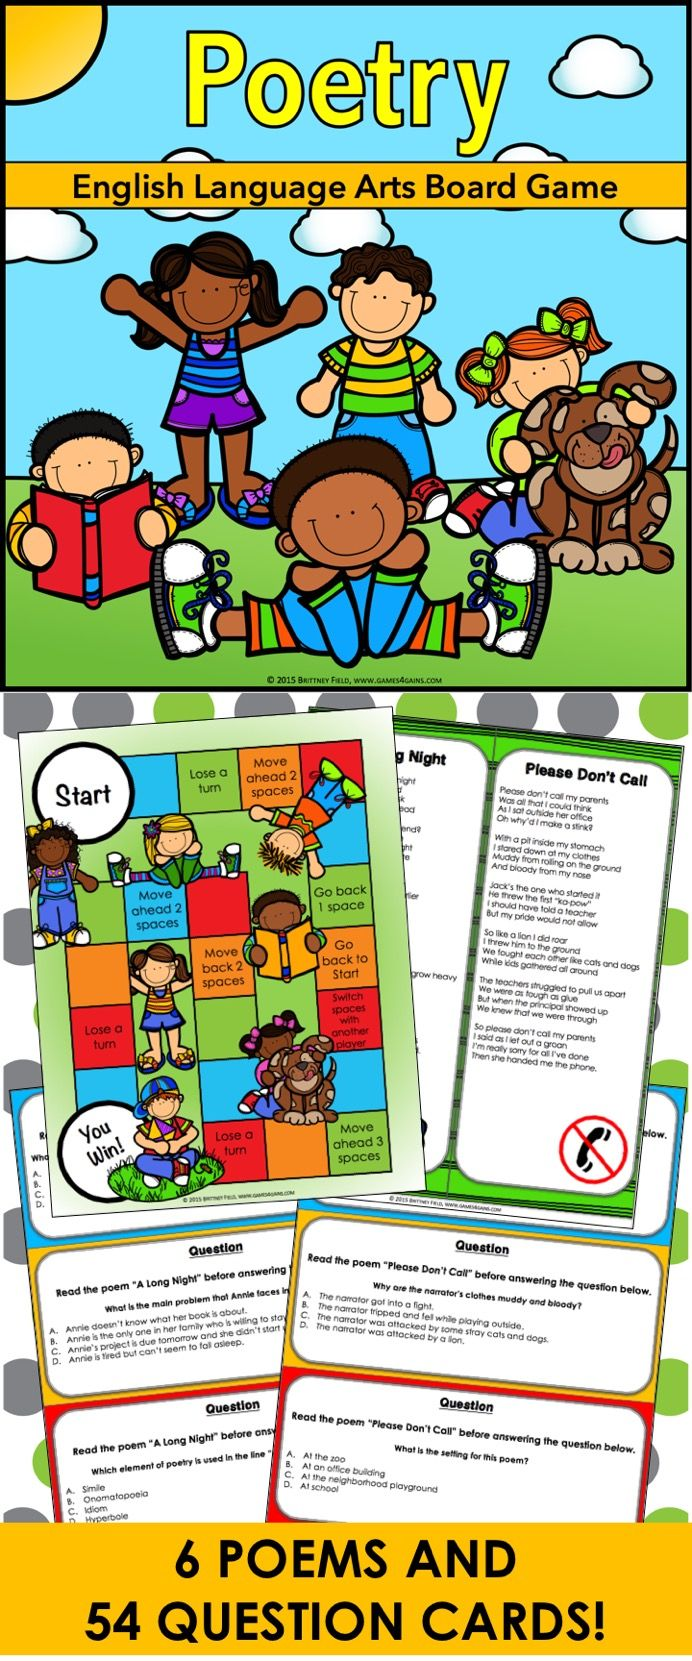 Poetry: Poetry Board Game contains 6 original poems, 54 poetry comprehension game cards, and a game board to help students practice comprehending. This poetry game works great as a pair/group activity, or for use in literacy centers.